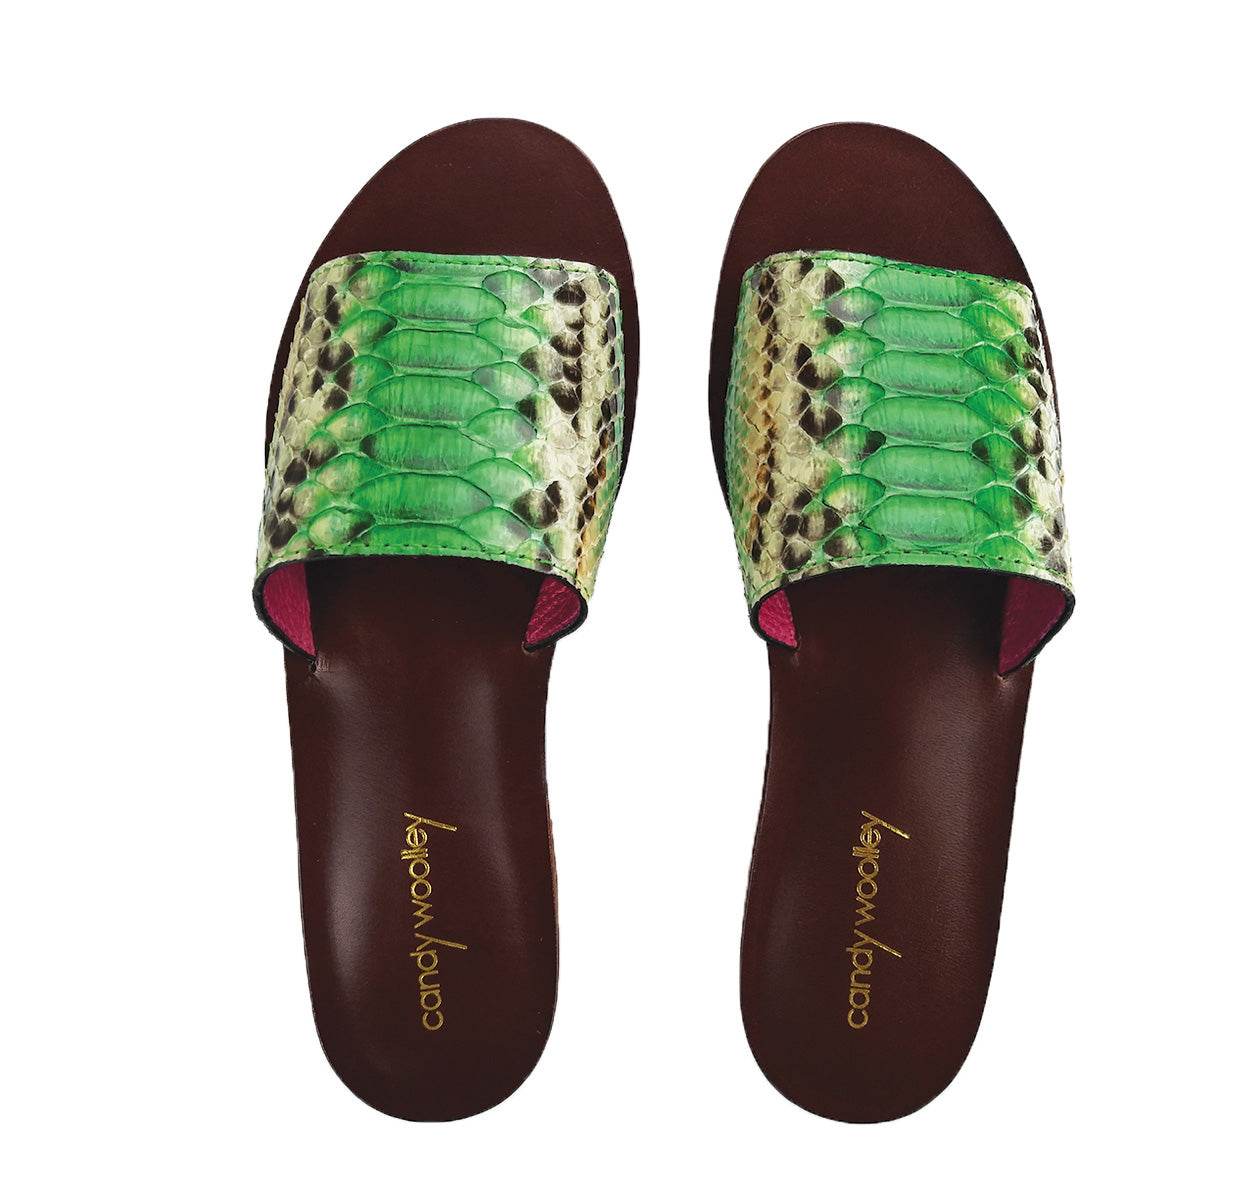 Genuine Python, Green & Cream Flat Slide Sandals. Size Available 7. [NEW: NON-SLIP & SOLE PROTECTOR]